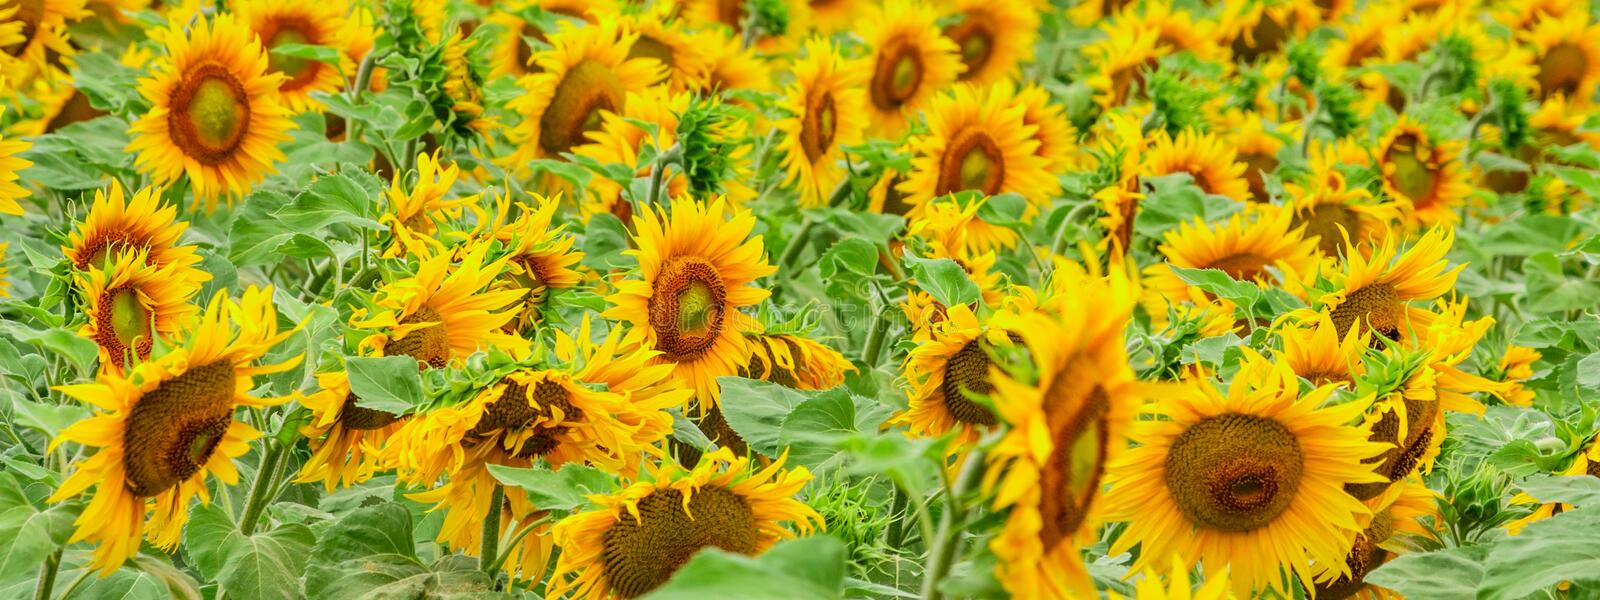 Summertime rural landscape - field of sunflowers royalty free stock photos